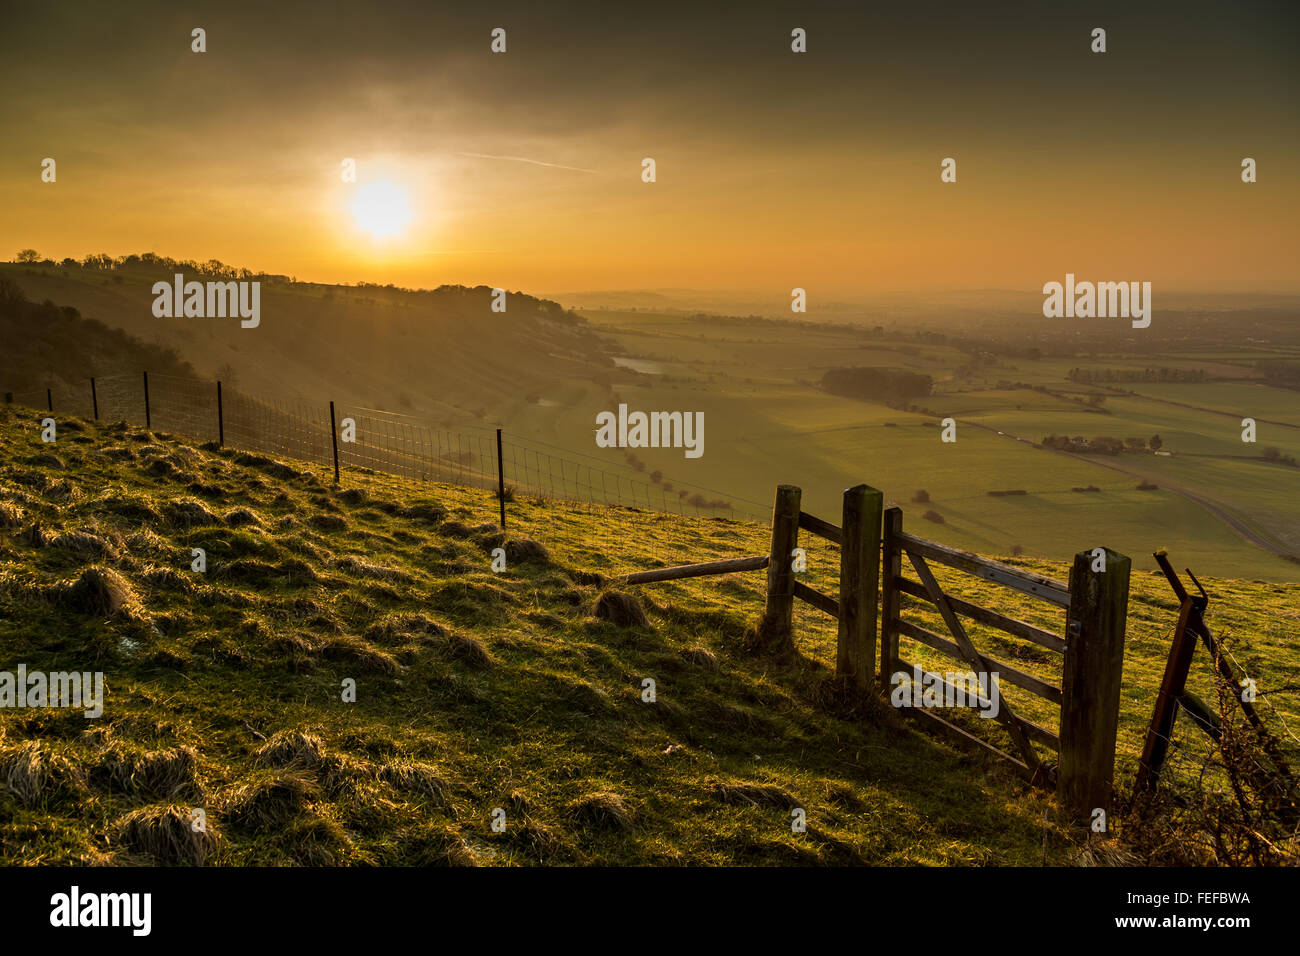 Public footpath & sunset over Wiltshire countryside near the town of Westbury from Bratton Camp and The Westbury Stock Photo